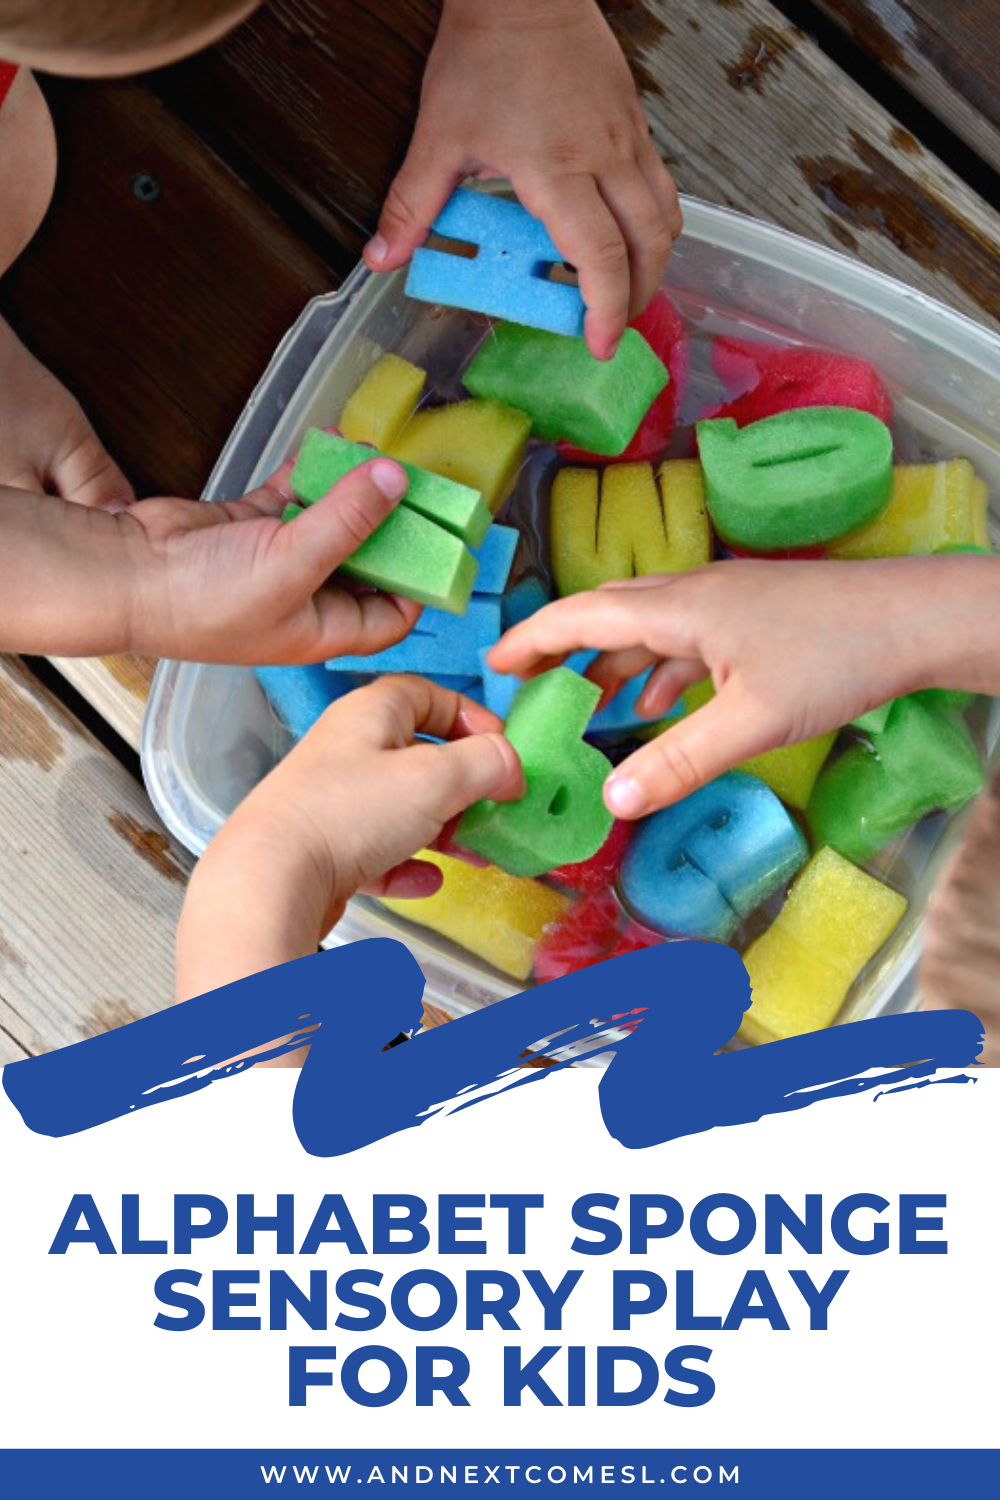 A fun sponge sensory play activity for toddlers and preschoolers using colorful letter sponges